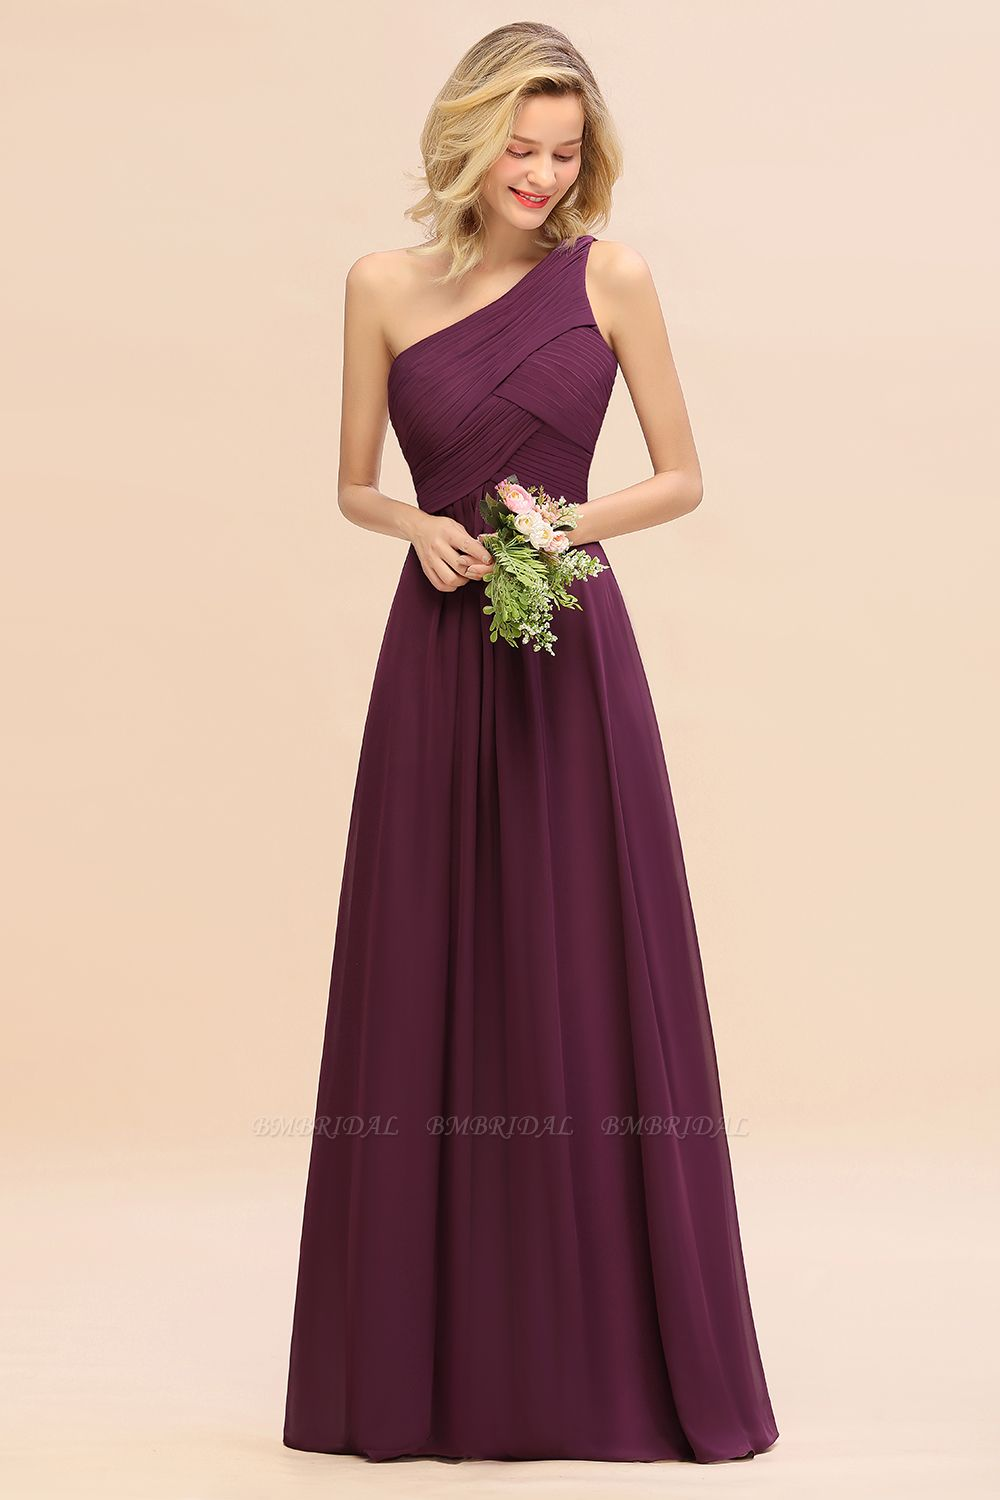 How To Choose A Bridesmaid Dress For Different Wedding Venues